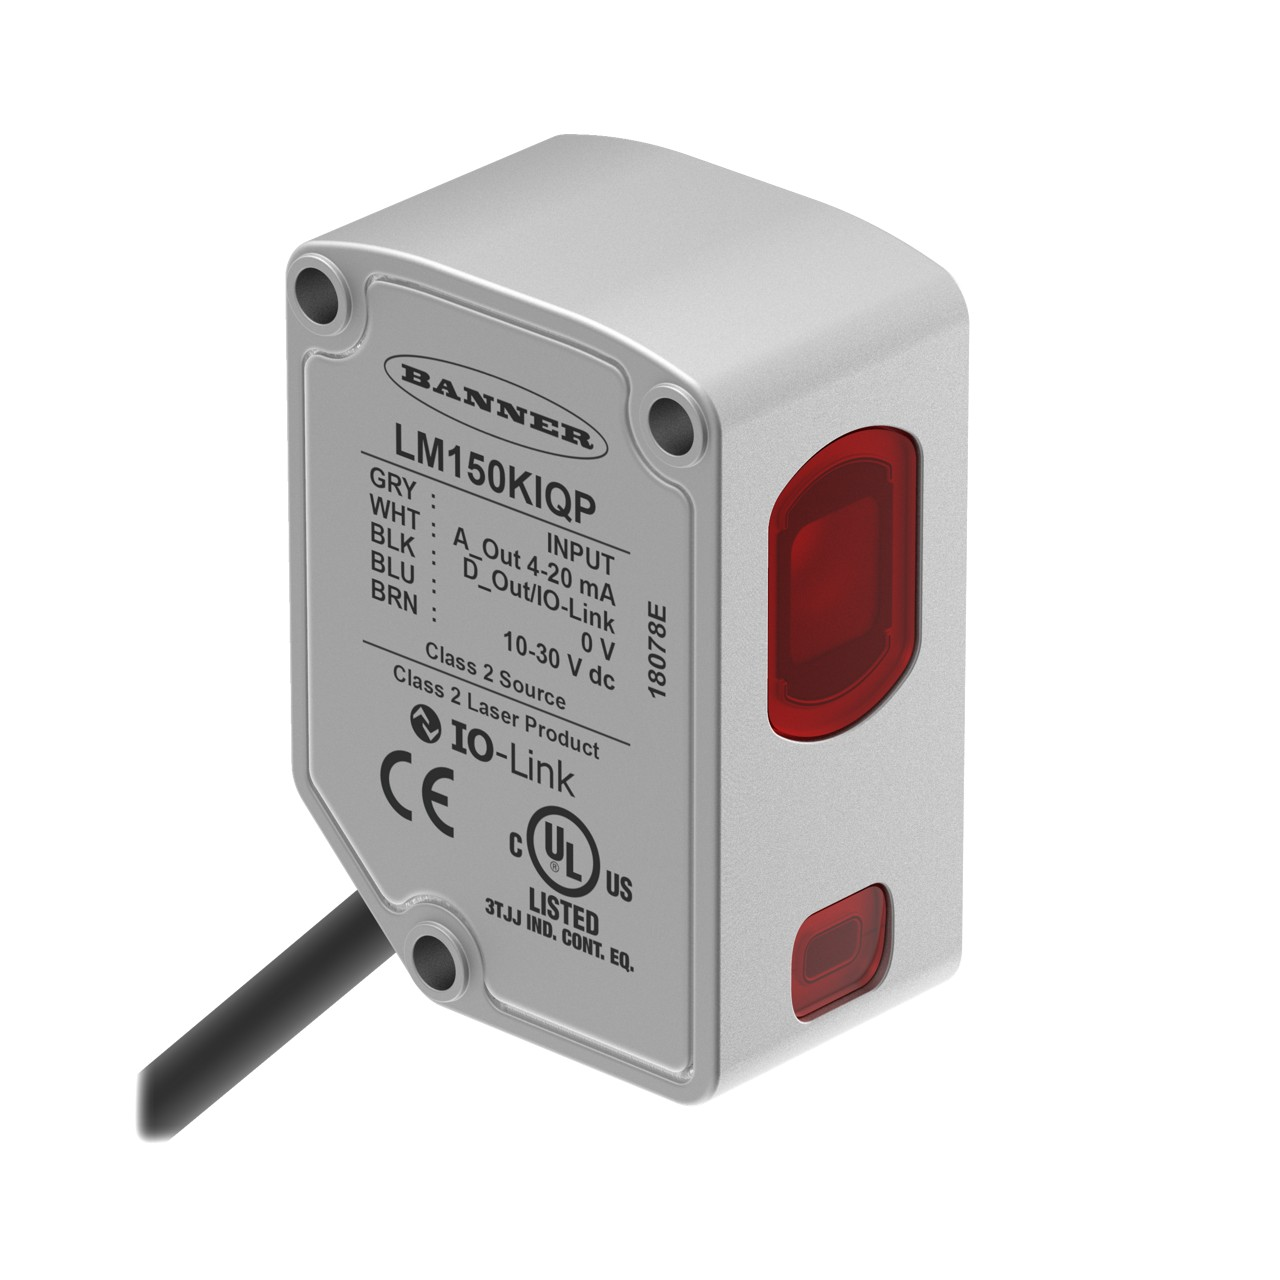 lm150kiqp-with-label